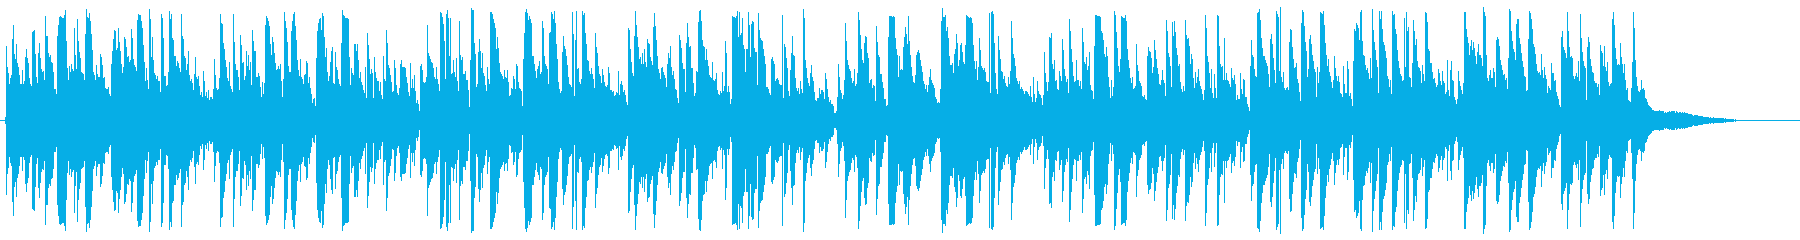 Acoustic guitar reminiscent of a warm family's reproduced waveform